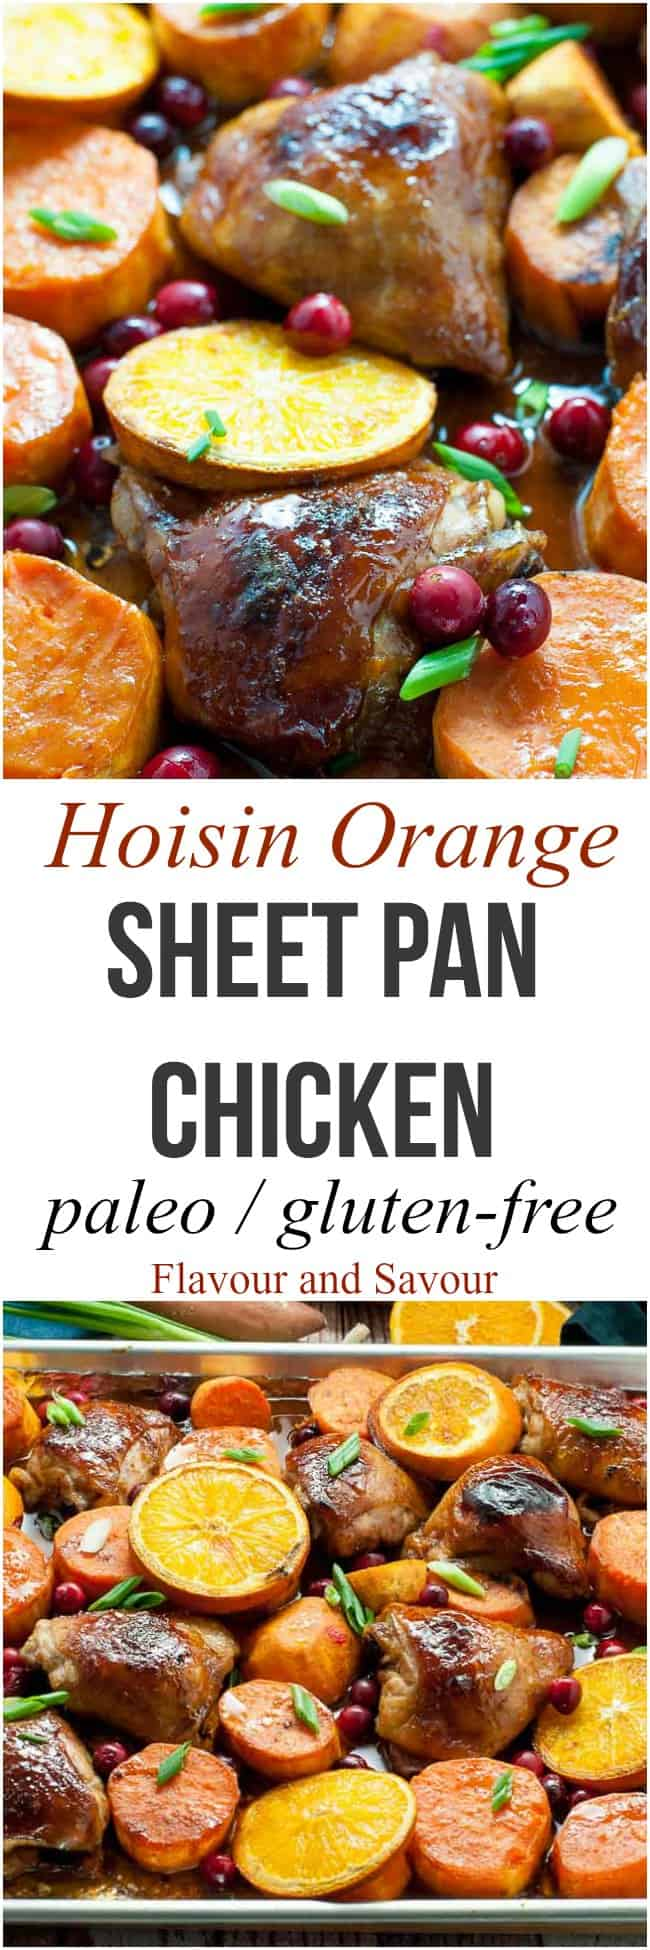 This Hoisin Orange Sheet Pan Chicken dinner with sweet potatoes makes juicy chicken with hints of orange, ginger and garlic. Add fresh tart cranberries for colour and flavour! #Paleo.